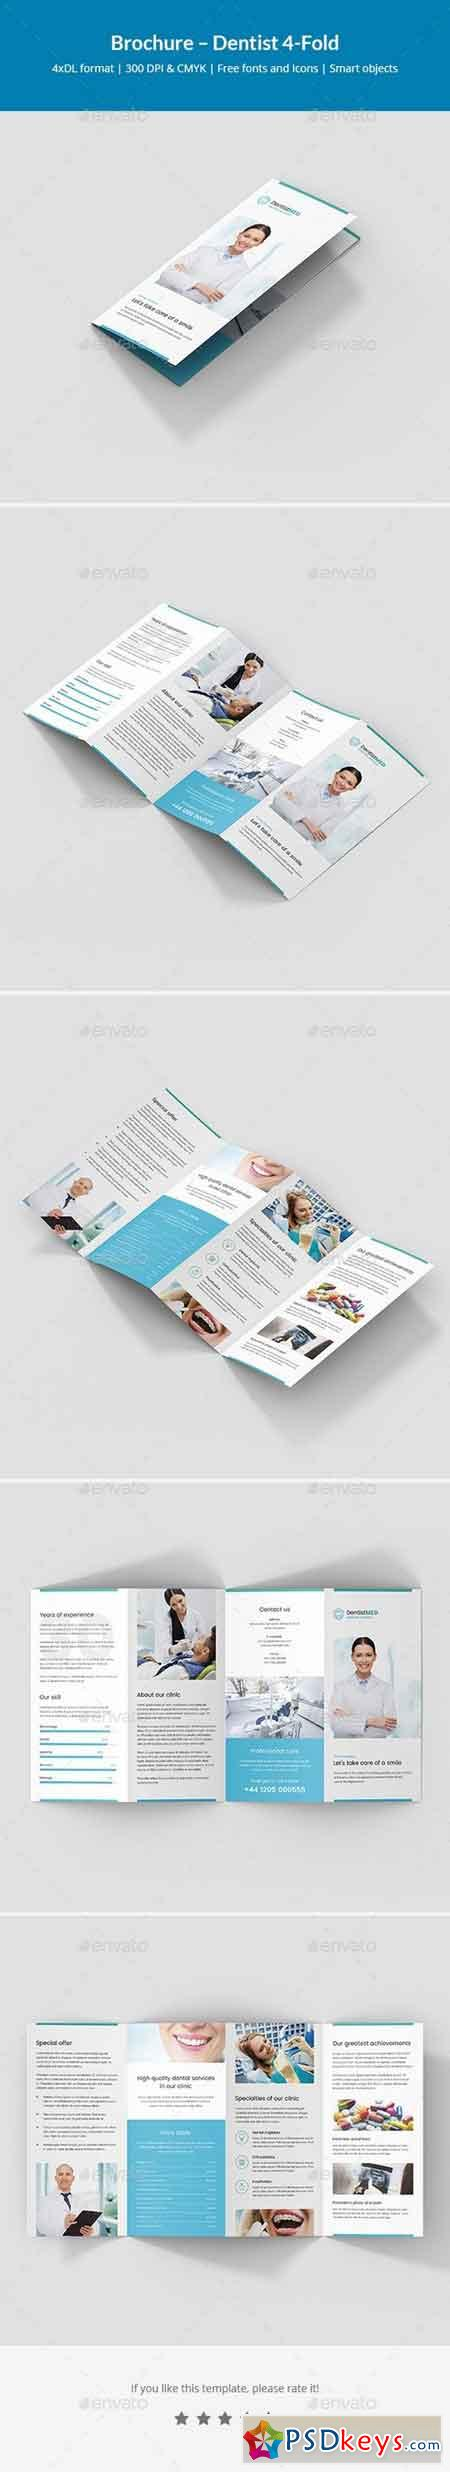 Brochure – Dentist 4-Fold 21273427